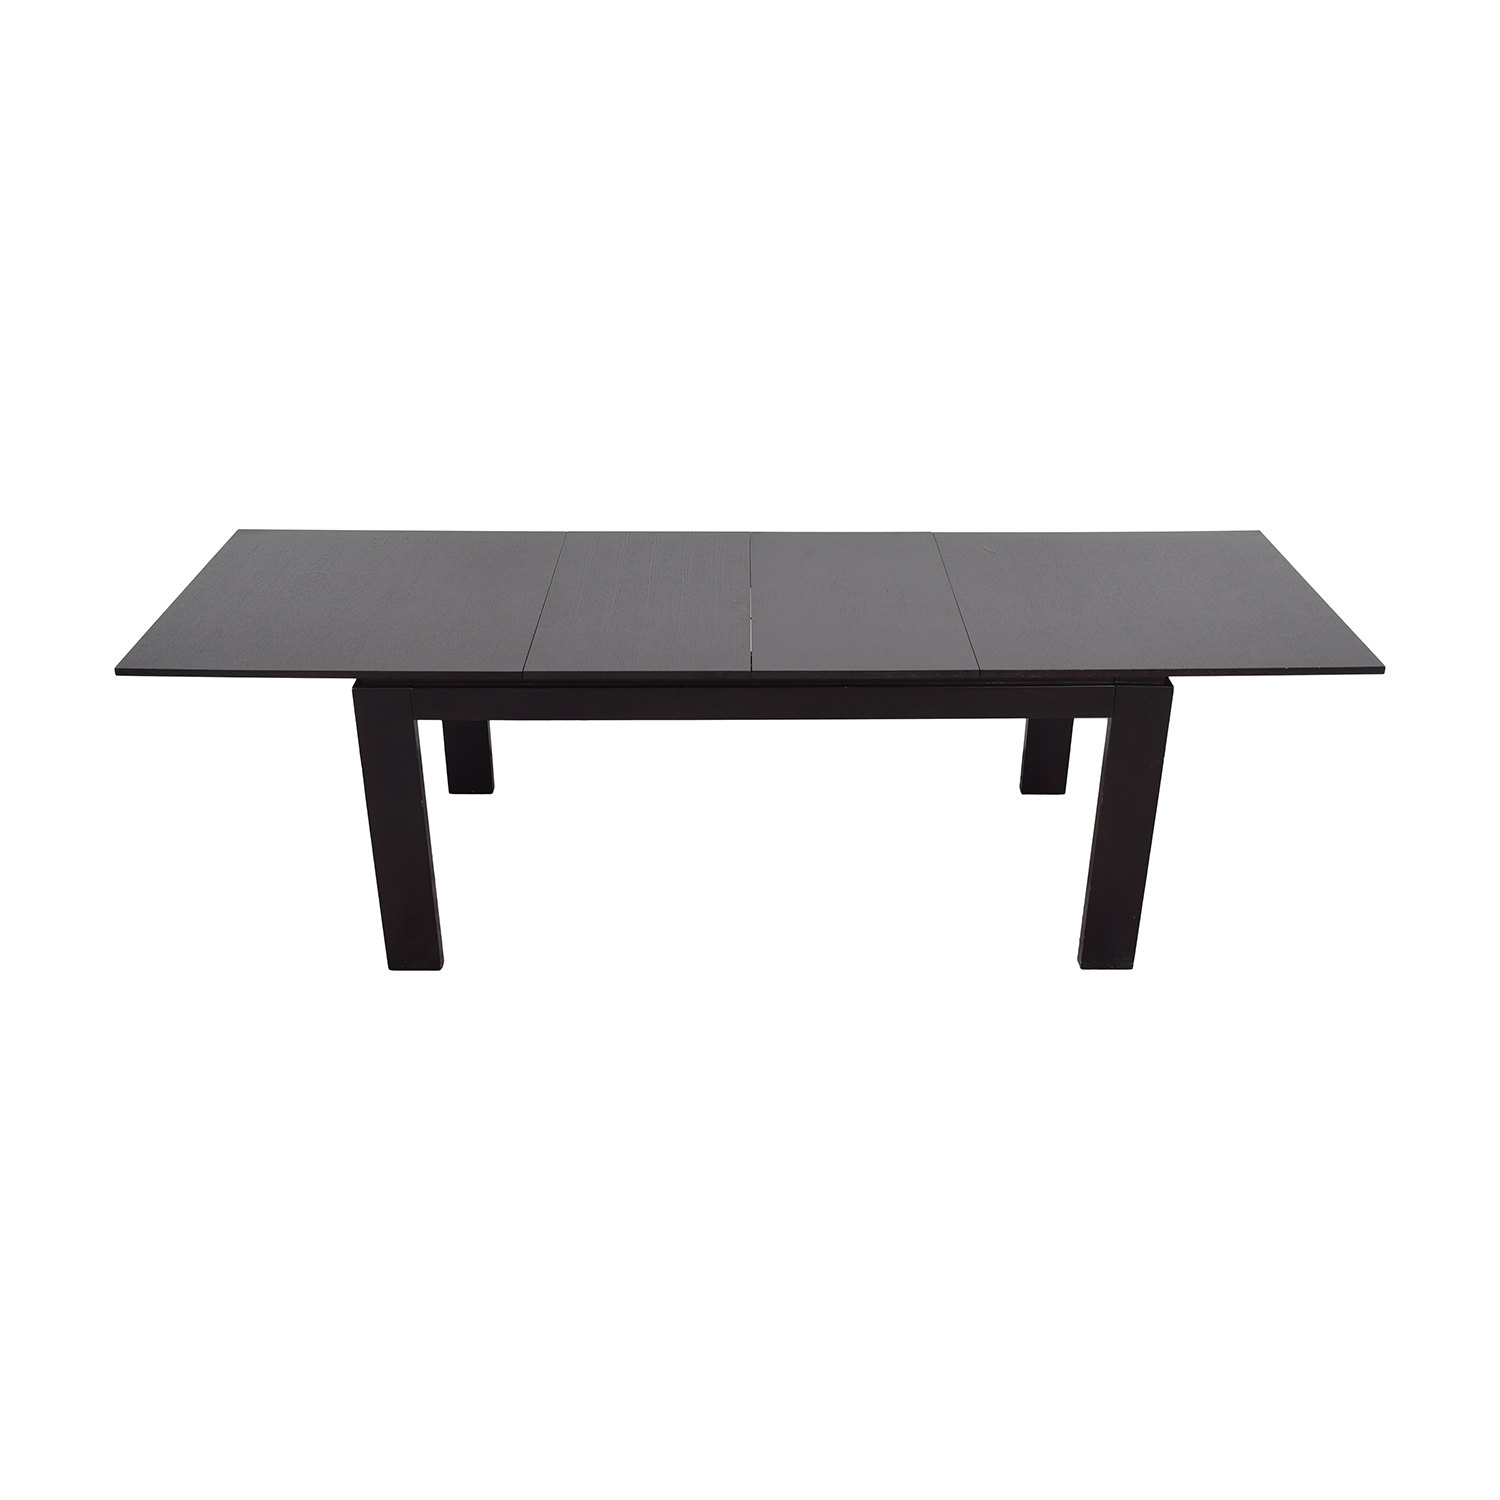 CB2 CB2 Wenge Expandable Dining Table ct